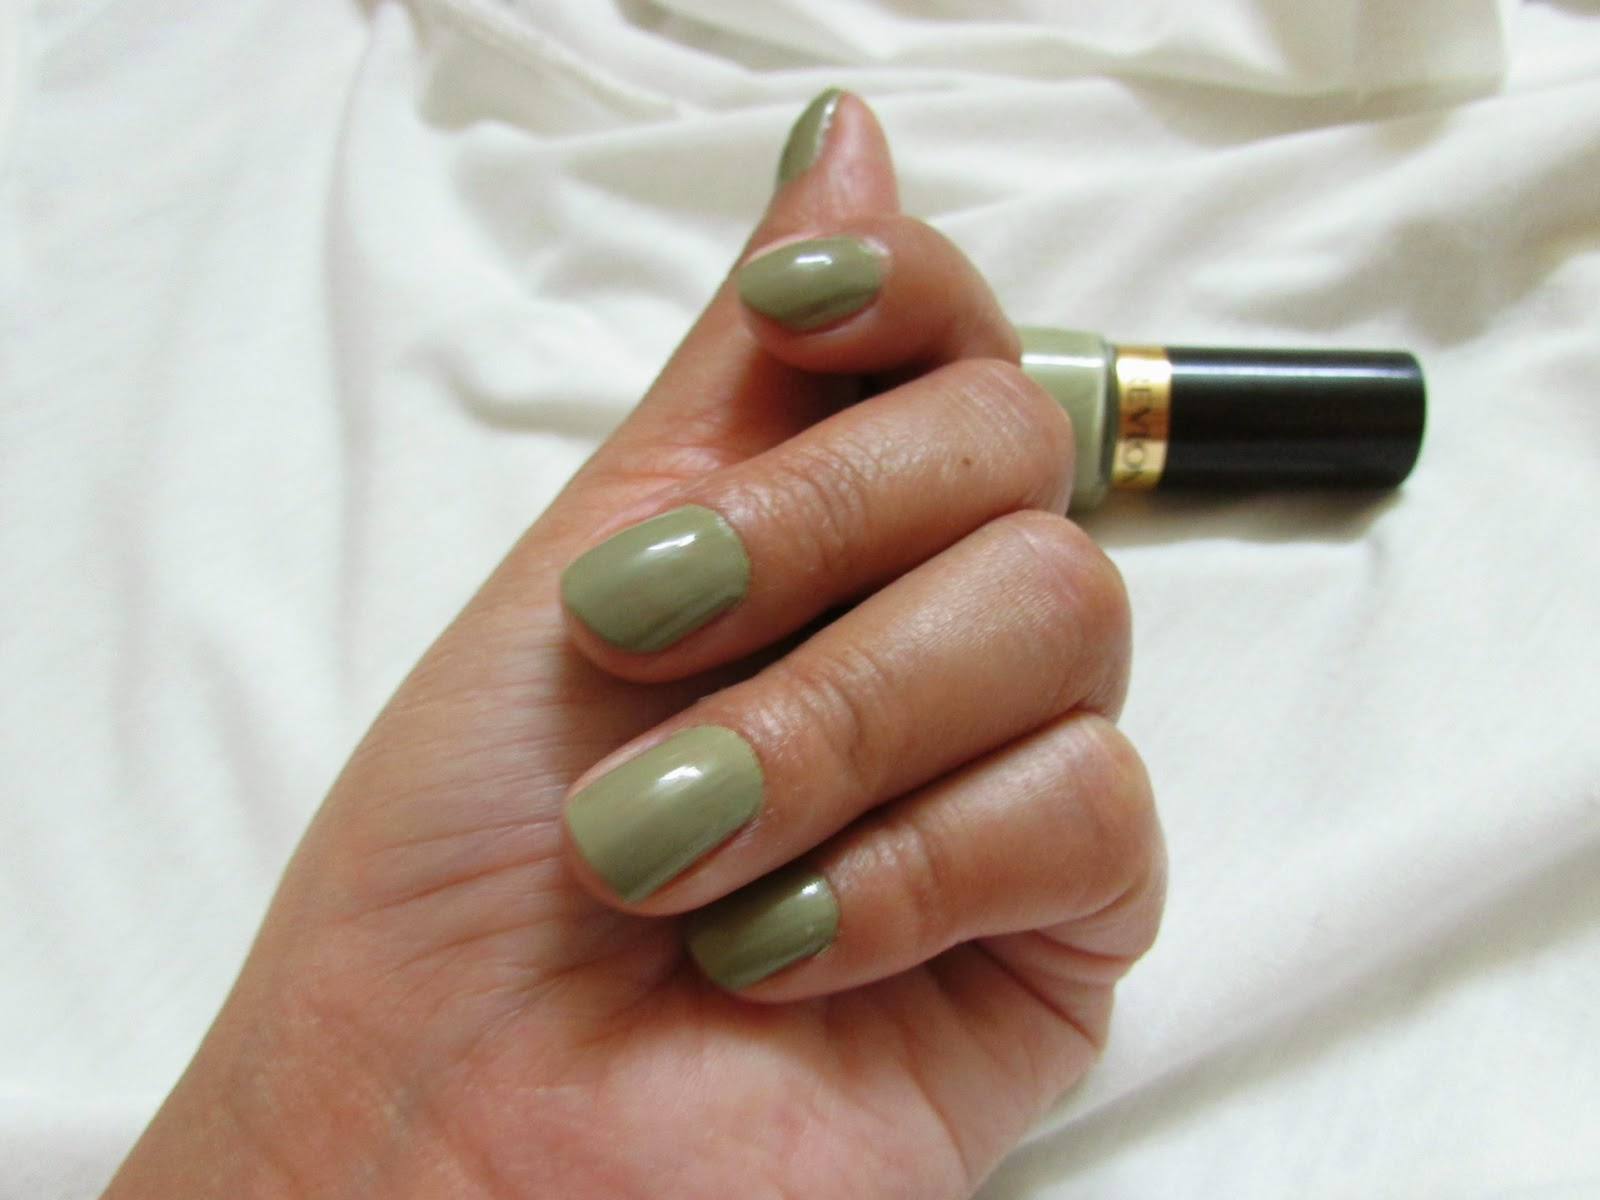 revlon nailpaint, revlon nailpaint muse, revlon  nailpolishes, revlon   nail polish , maybelline nail paint, revlon  nail polish, revlon  color show range , revlon  color show range nailpaint, revlon  color show india, revlon   nailpaint india, revlon   nailpolishes india, maybelline color shoe nail polish india, revlon  nail paint india, revlon nail polish  india, revlon color show range india , revlon color show range nailpaint  india, revlon color show price, maybelline color show nailpaint price, maybelline color show nailpolishes price, revlon color shoe nail polish price, maybelline nail paint price, maybelline nail polish  price, revlon color show range price , revlon range nailpaint  price, revlon review, revlon nailpaint review, revlon  nailpolishes review, maybelline color shoe nail polish review, maybelline nail paint review, maybelline nail polish  review, revlon  review , revlon  range nailpaint  review, revlon  color show online, revlon color show nailpaint online, revlon color show revlon online, revlon color shoe nail polish online, revlon nail paint online, revlon nail polish  online, revlon color show range online , revlon color show range nailpaint  online, revlon color show price india, revlon color show nailpaint price india, revlon color show nailpolishes price india, revlon color shoe nail polish price india, revlon nail paint price india, revlon nail polish  price india, revlon color show range price india , revlon color show range nailpaint  price india, revlon color show nailpaint chrome pink, revlon color show nailpaint chrome pink review, revlon color show nailpaint chrome pink price, revlon color show nailpaint chrome pink swatches , revlon color show nailpaint chrome pink price and review, revlon color show nailpaint chrome pink india, revlon color show nailpaint chrome pink online, revlon color show nailpaint chrome pink online india, revlon color show nailpaint chrome pink price online india, revlon color show nailpaint chrome pink best pink, best pink nailpaint revlon color show nailpaint chrome pink, best pink nailpolishes india, best pink nailpaint, muse greencolor, muse green color swatches, muse green revlon color show, muse green , muse green revlon  nail paint , muse green revlon color show nail paint review, muse green revlon color show nail paint price,muse revlon color show nail paint swatches , chrome green revlon  color show nail paint online, muse green revlon  color show nail paint india, gold pink nailpaint,